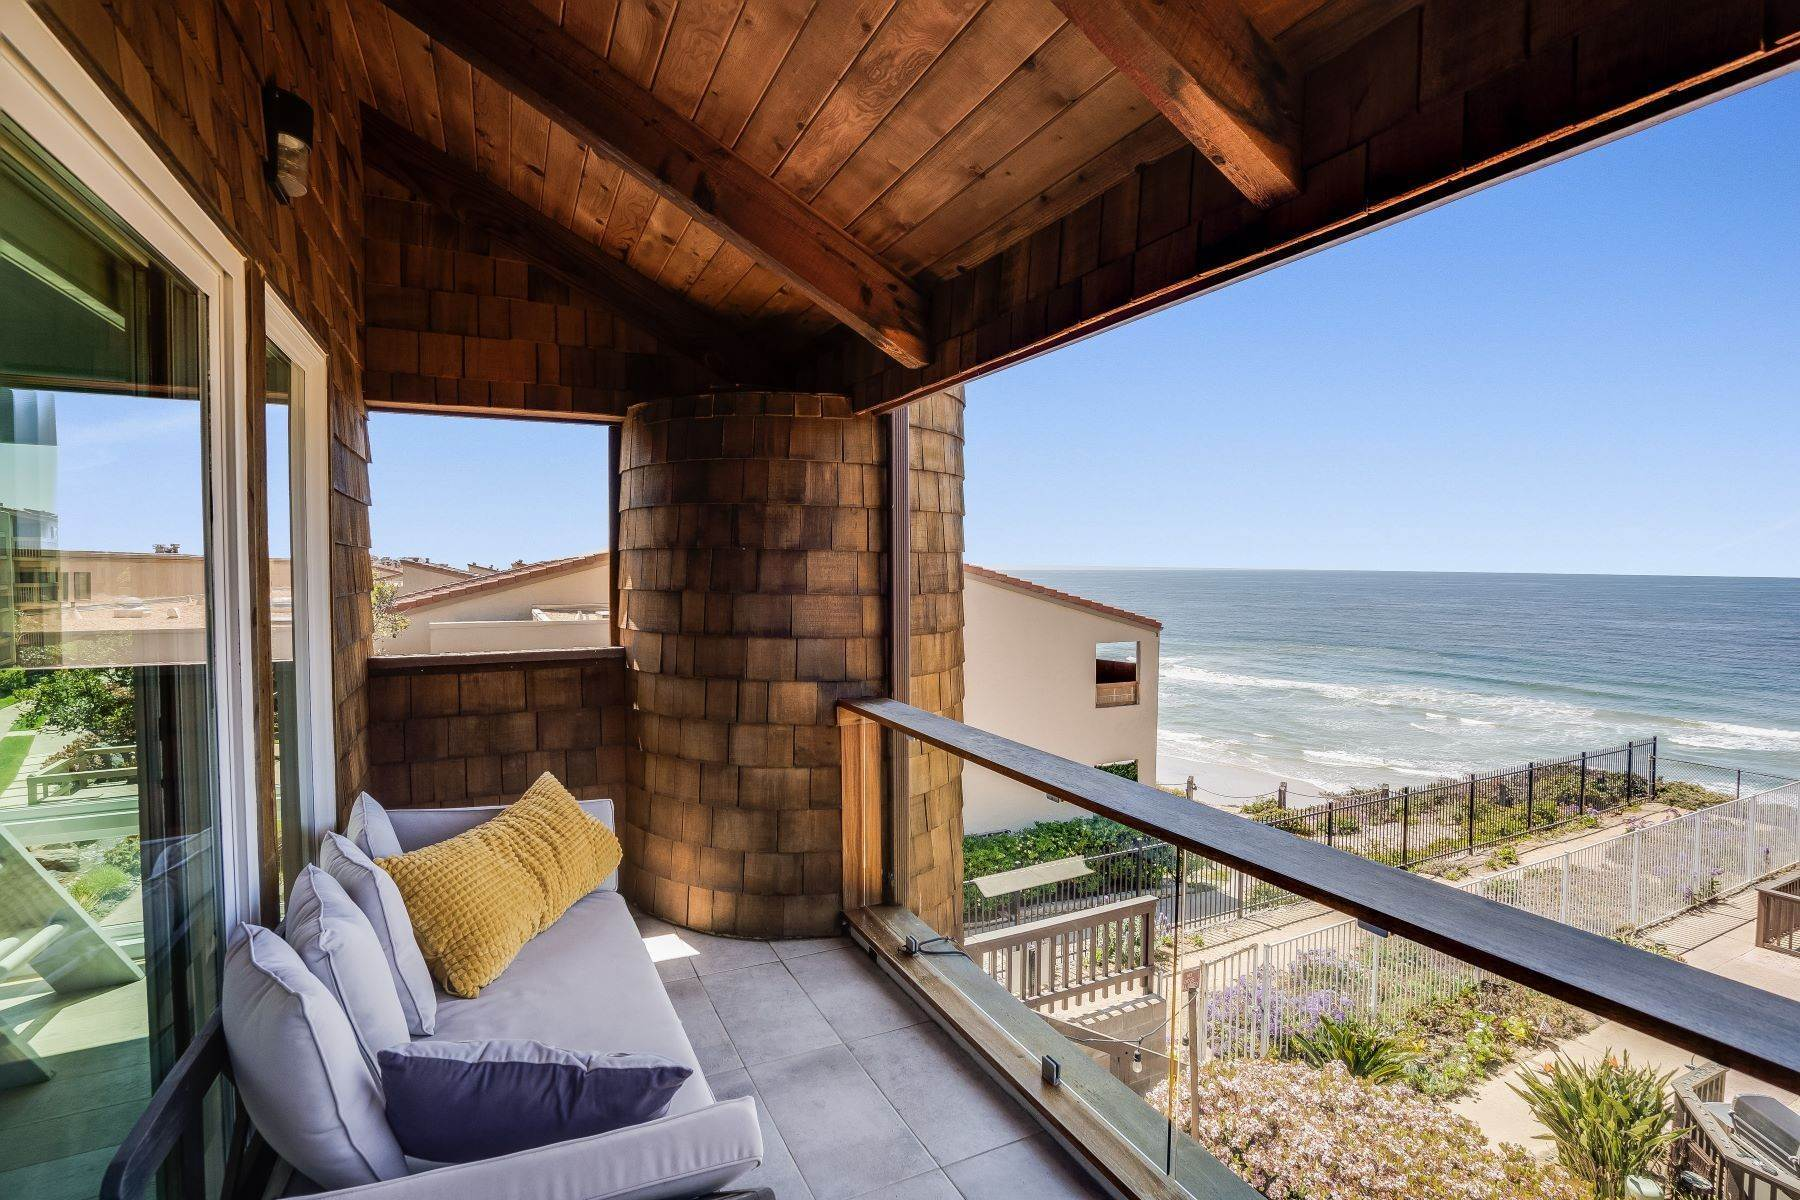 Condominiums for Sale at 325 South Sierra Avenue 45, Solana Beach, CA 92075 325 South Sierra Avenue 45 Solana Beach, California 92075 United States